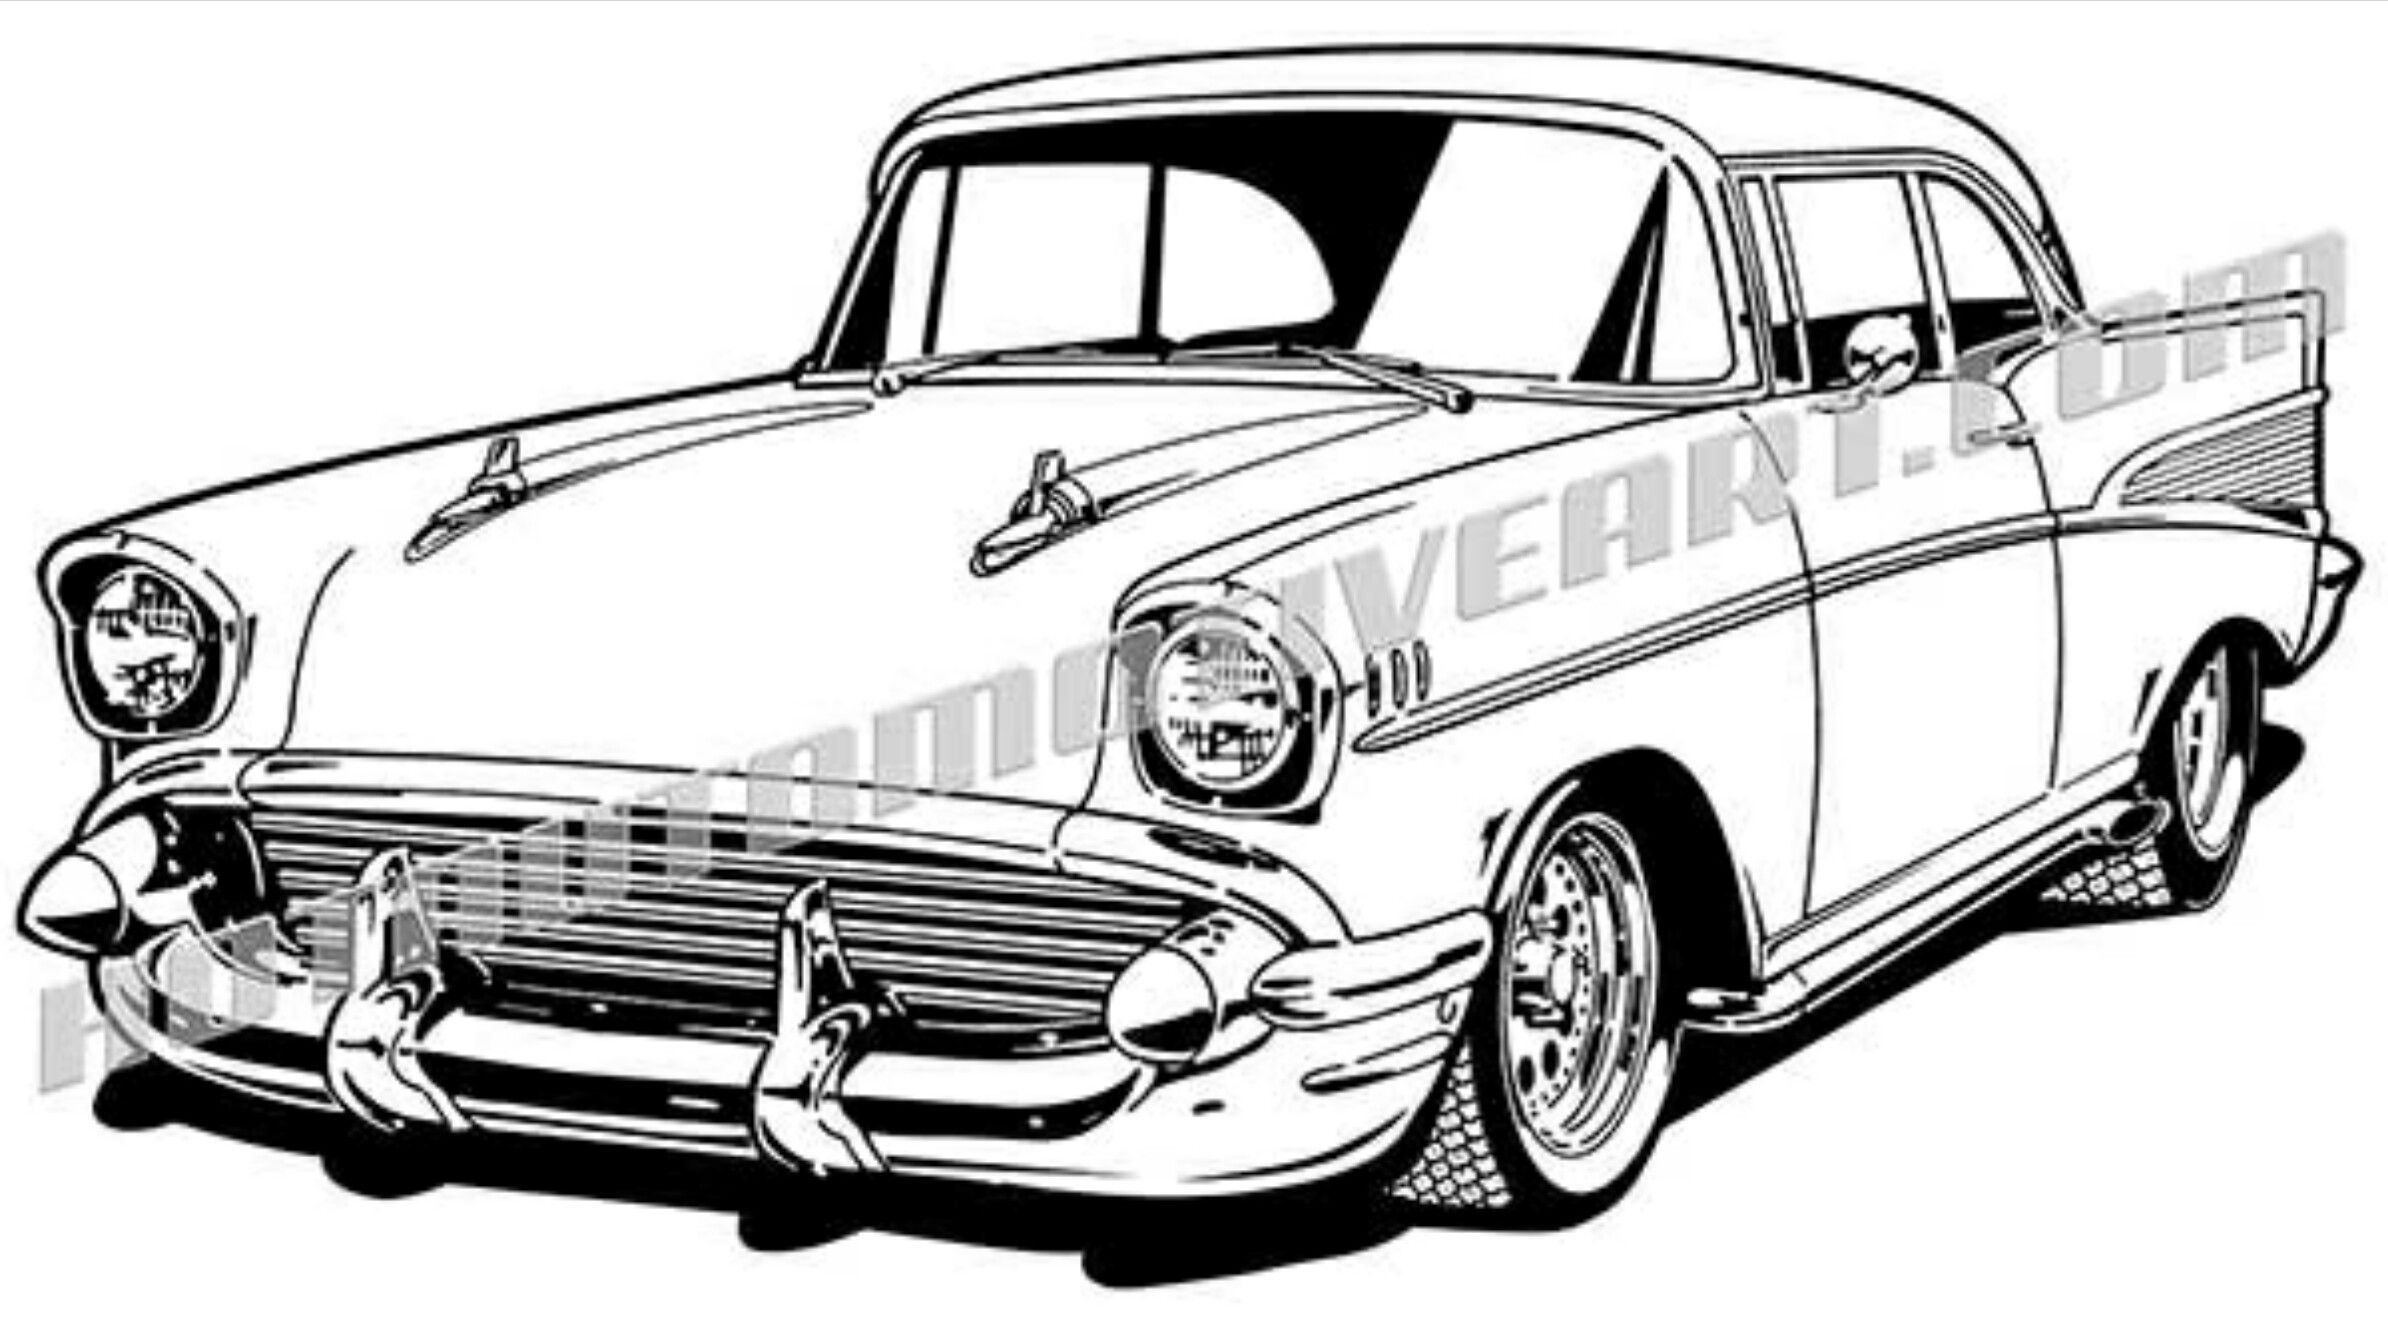 Pin By Guy Crennan On Cars Pinterest Car Drawings And Cars